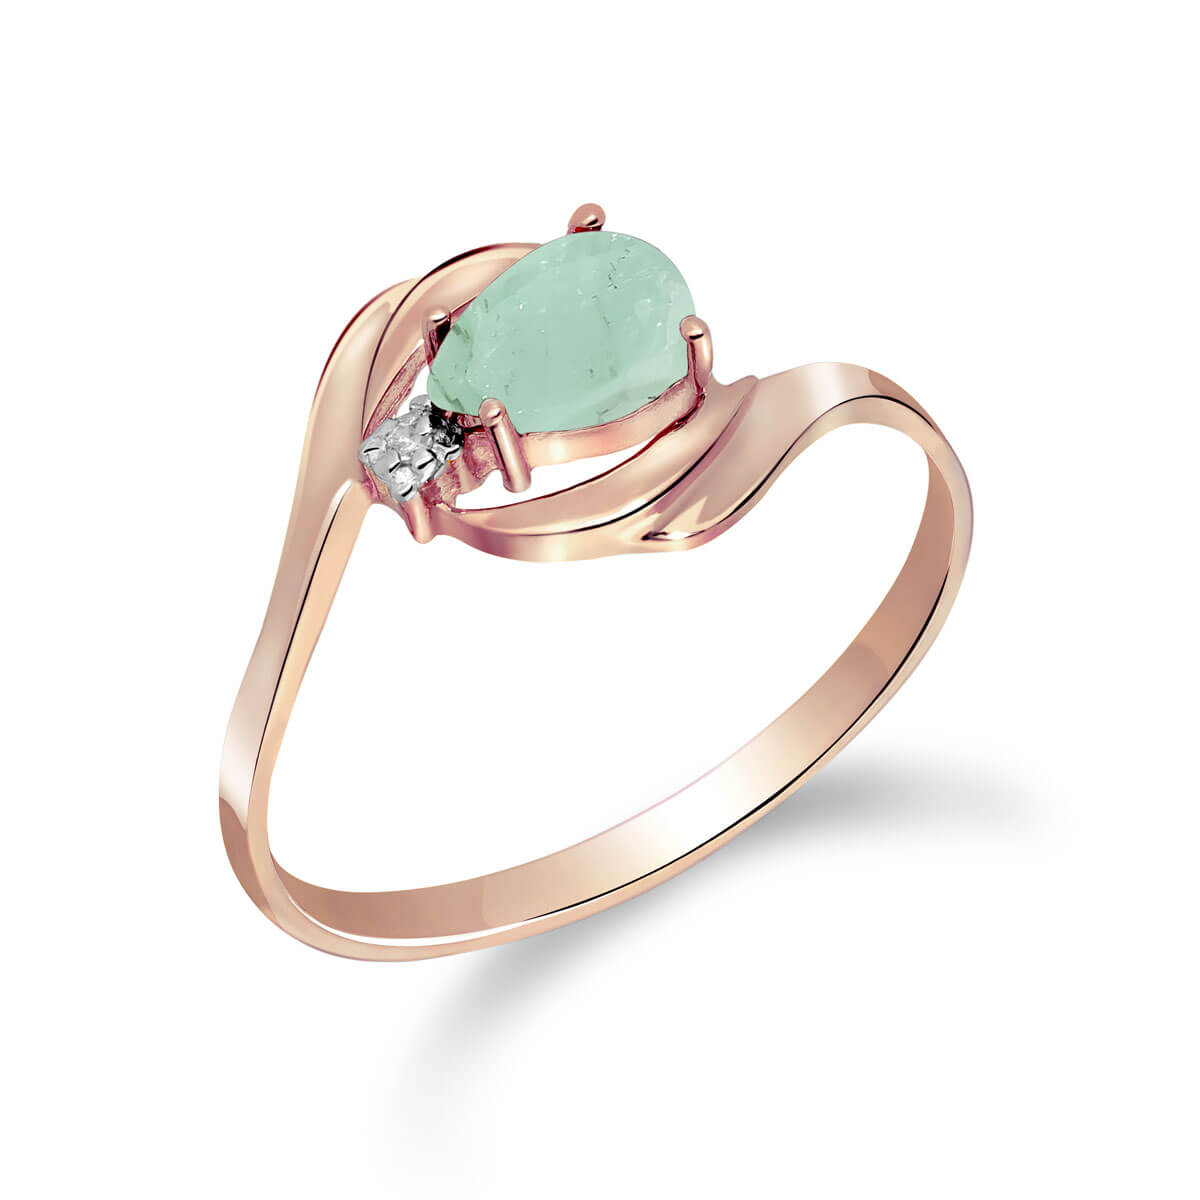 Emerald & Diamond Flare Ring in 18ct Rose Gold